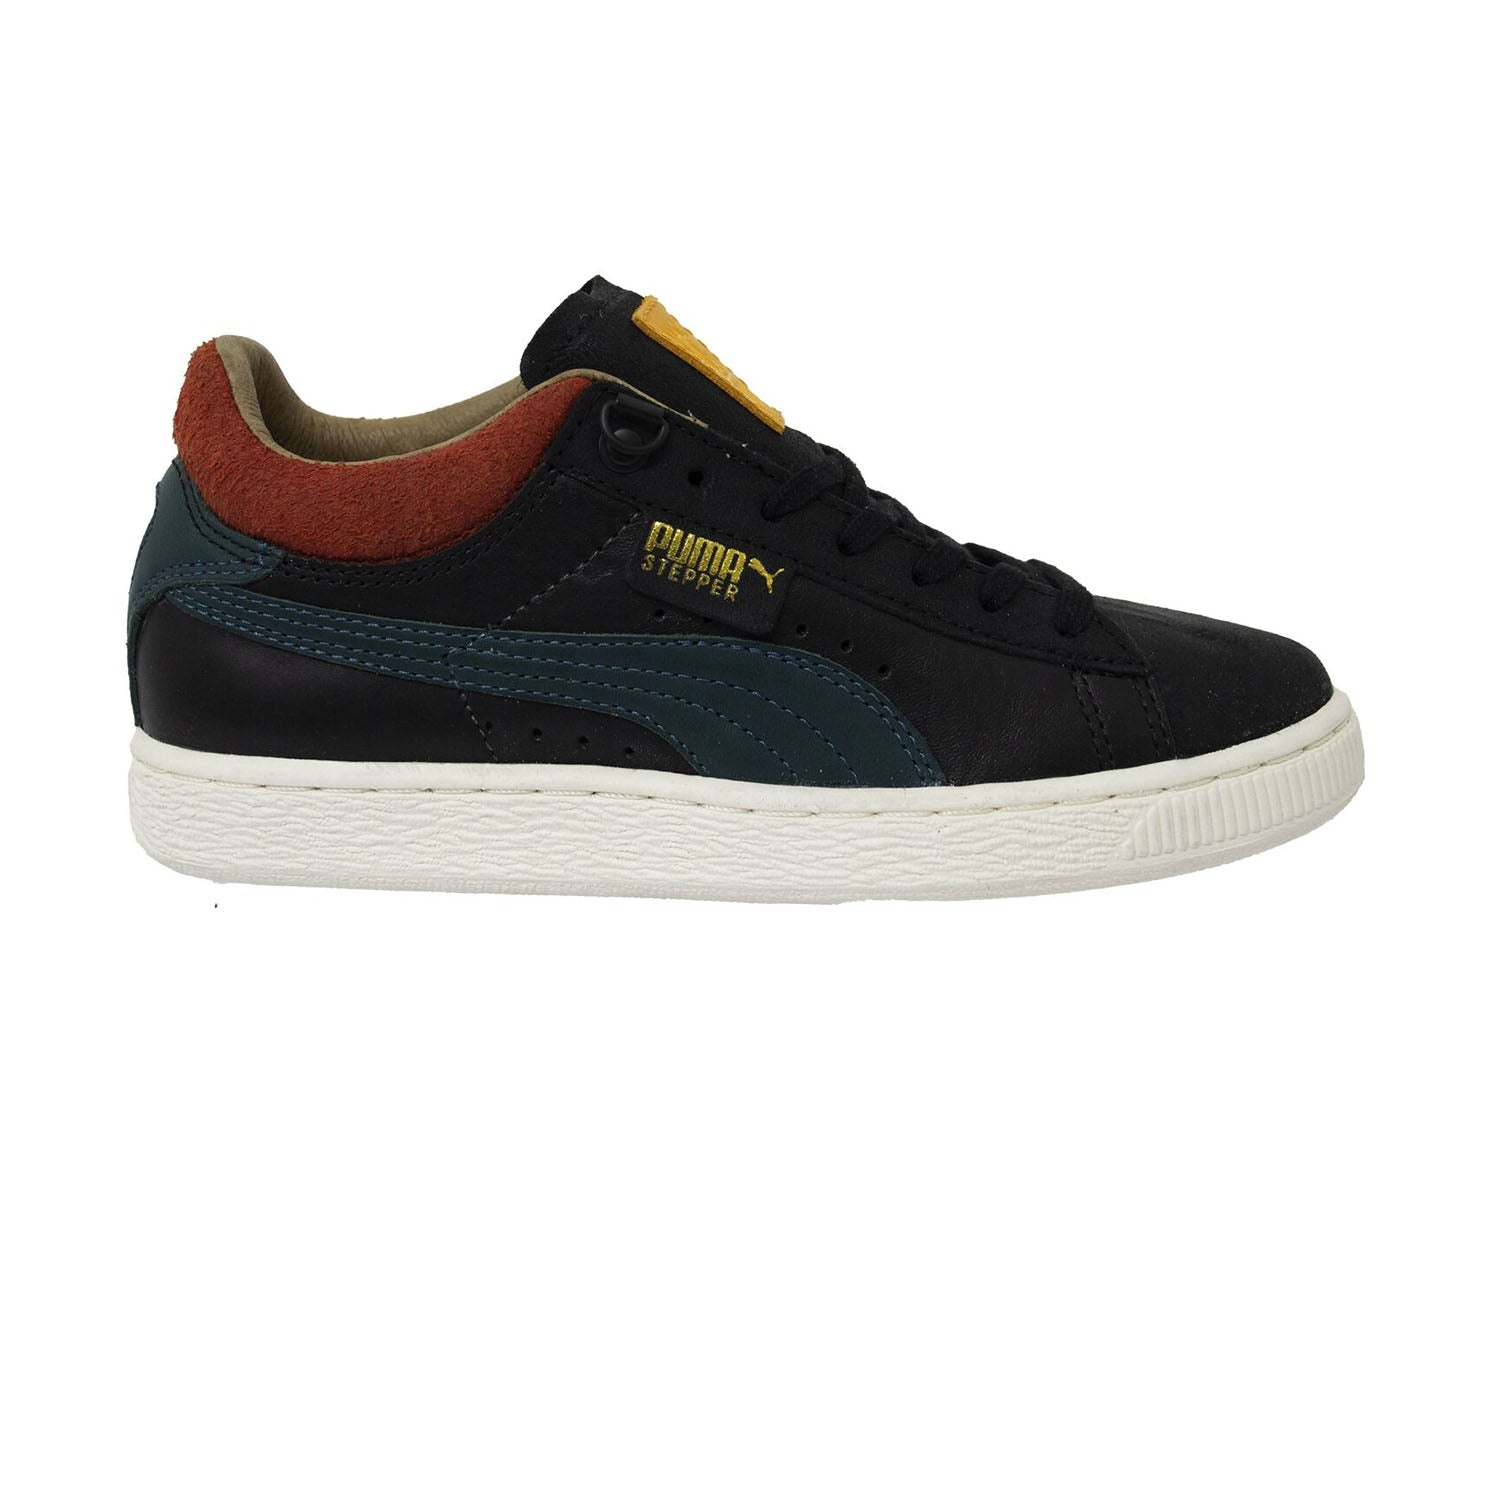 Puma Stepper Classic MMQ Leather Lace Up Trainers